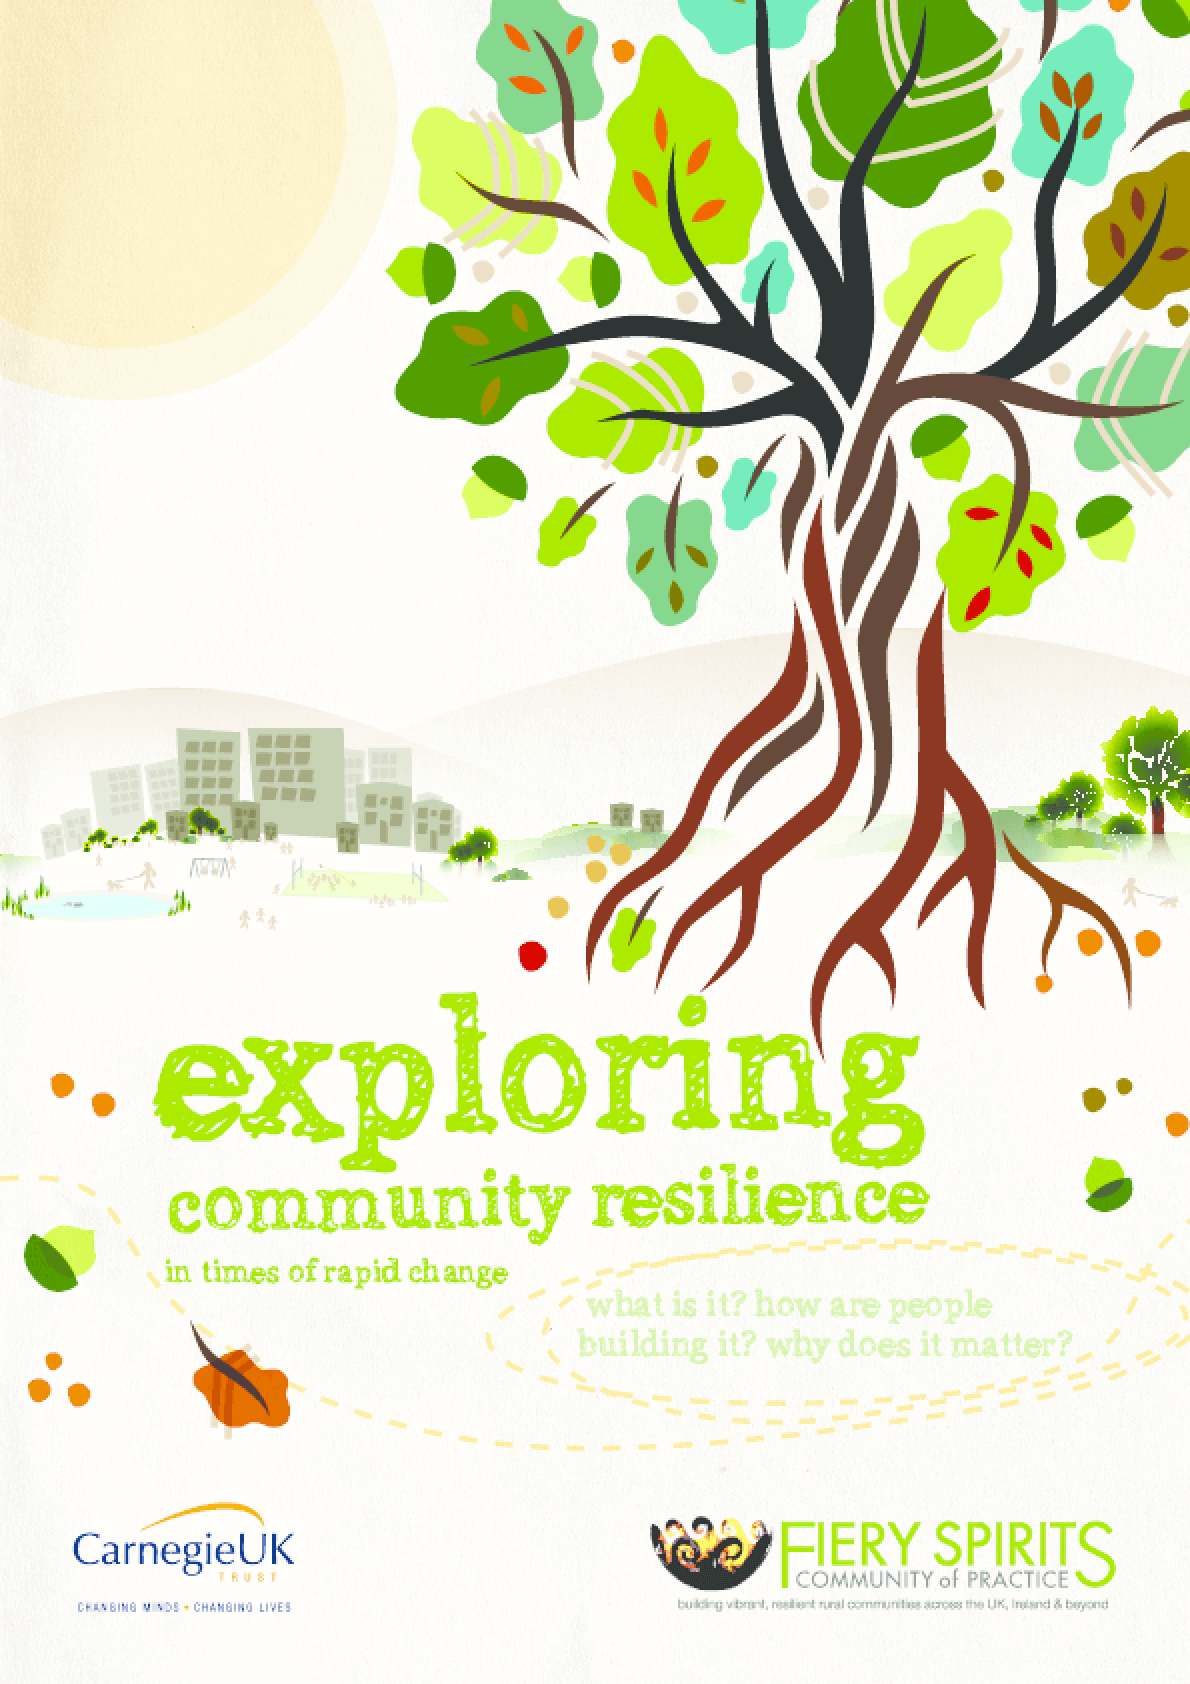 Exploring Community Resilience In Times of Rapid Change